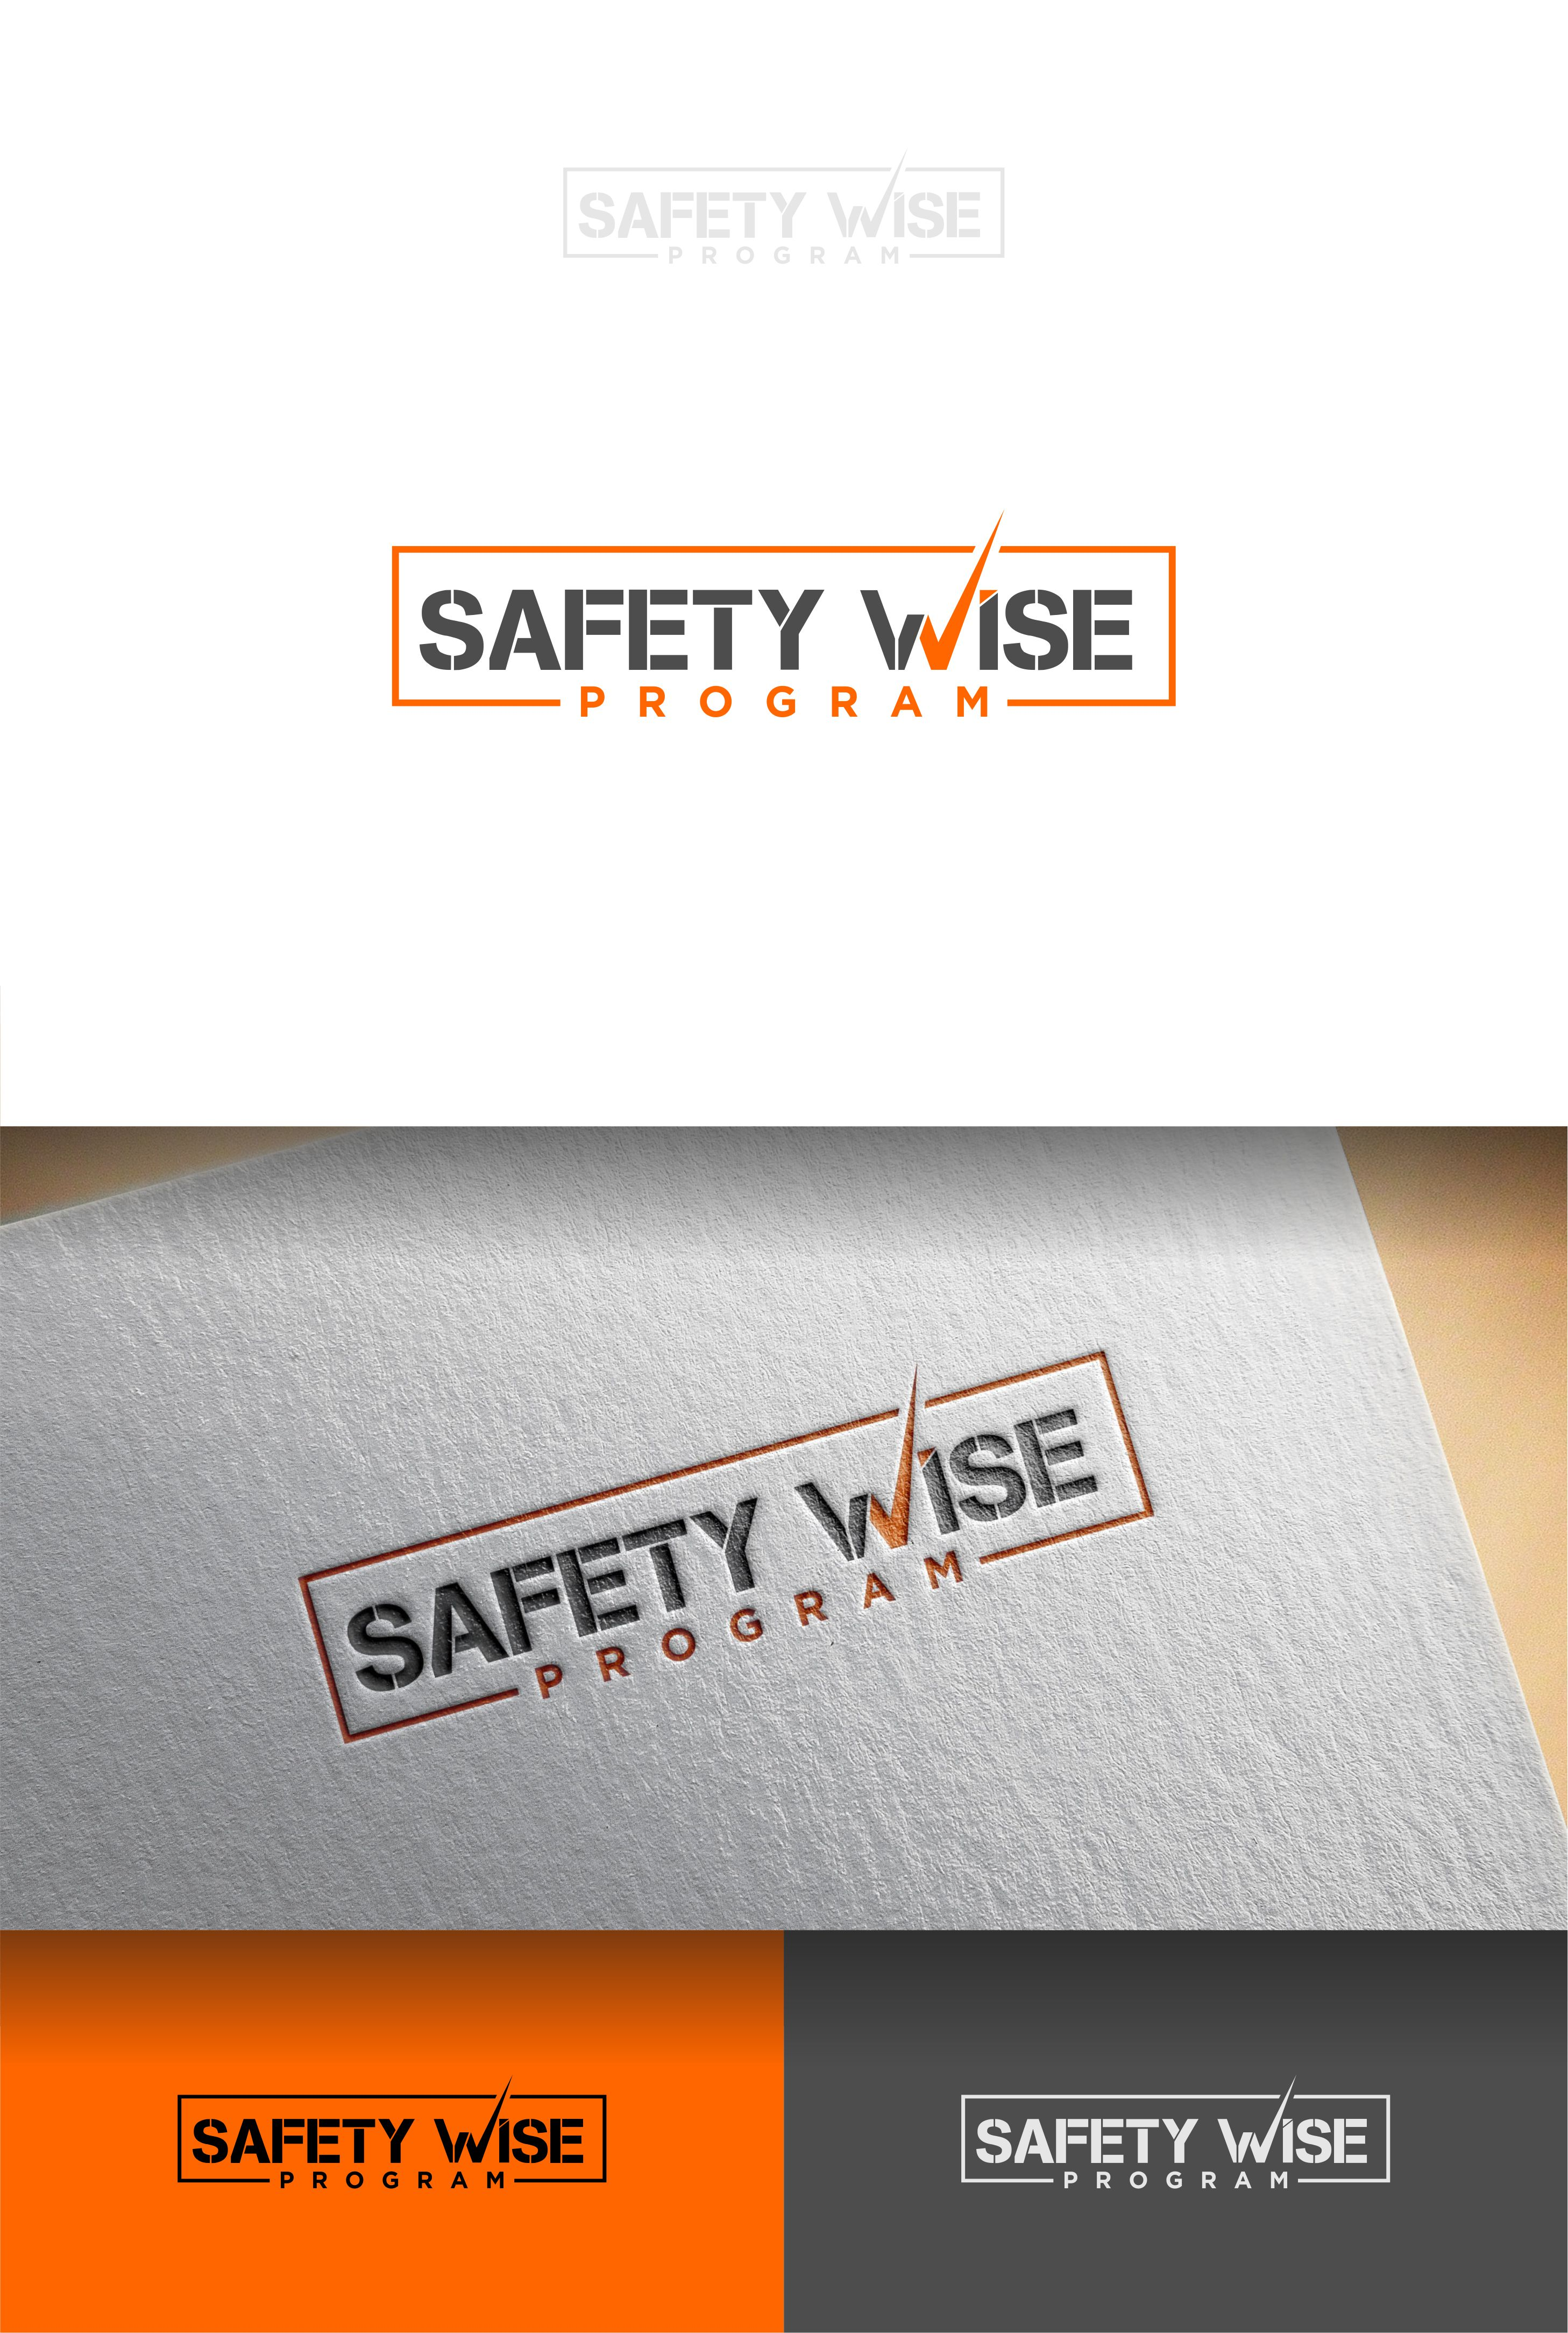 Logo Design by Raymond Garcia - Entry No. 141 in the Logo Design Contest New Logo Design for Safety Wise Program.